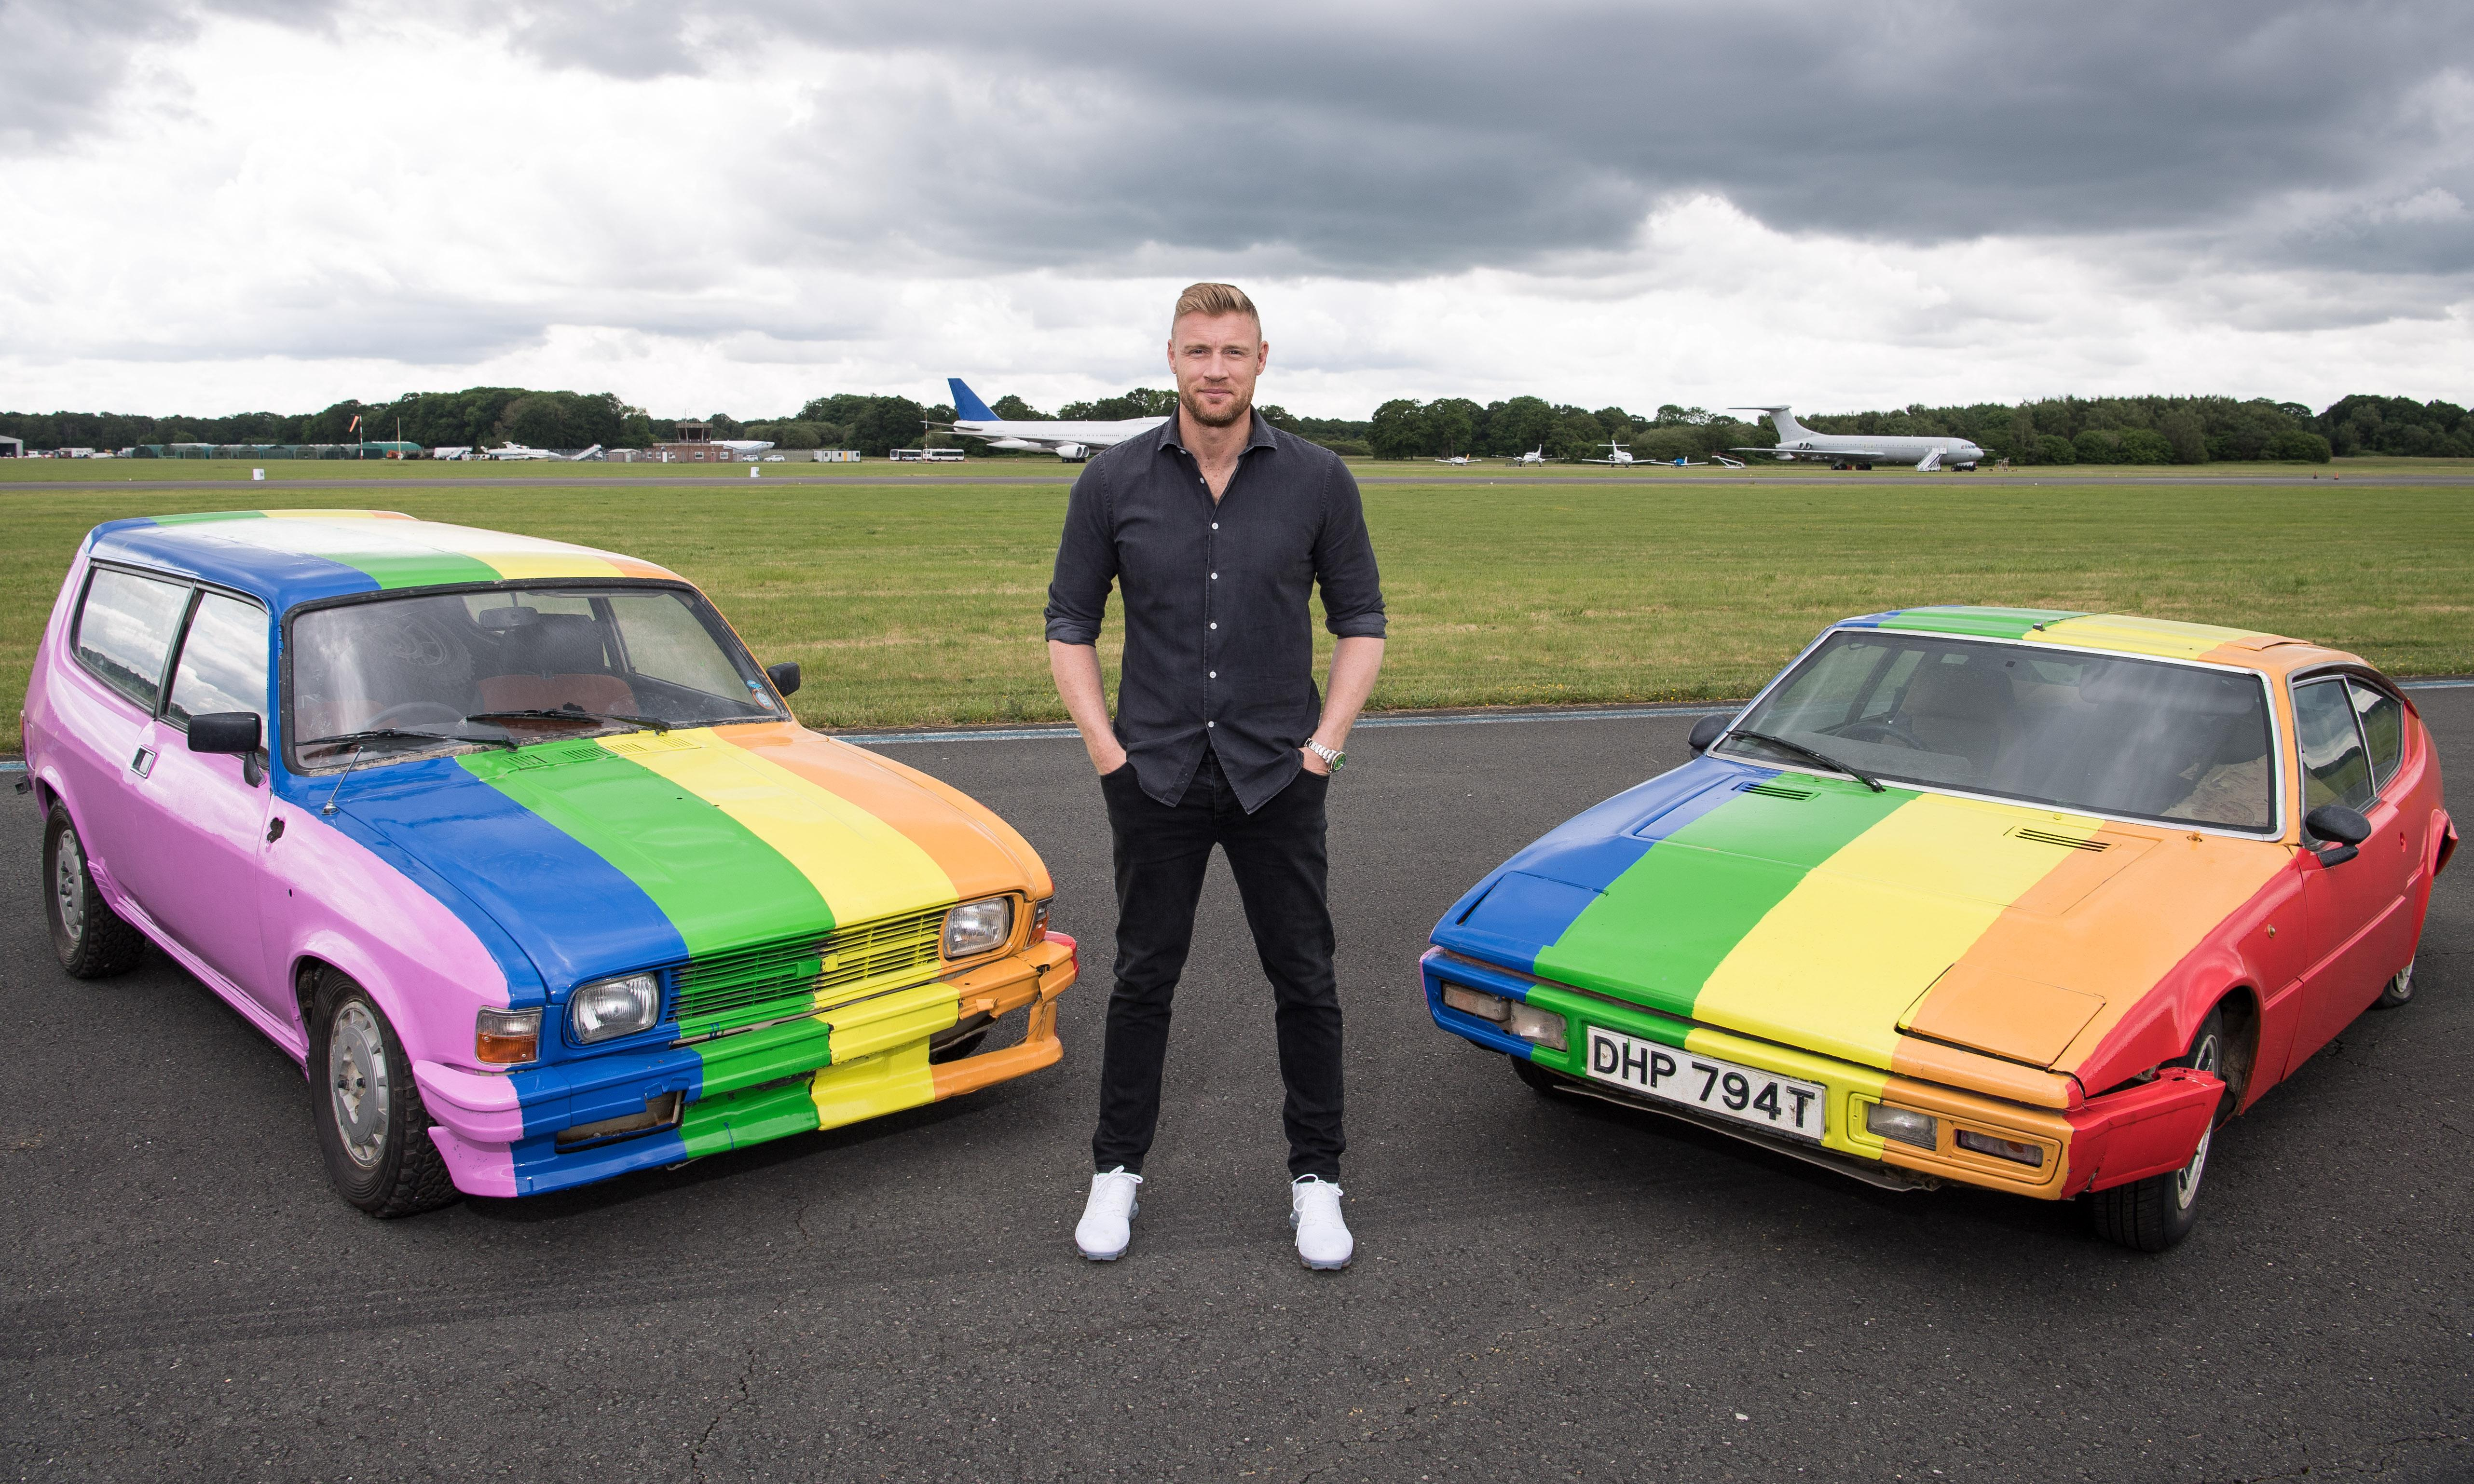 Top Gear sprays LGBT pride flag on cars used in Brunei filming